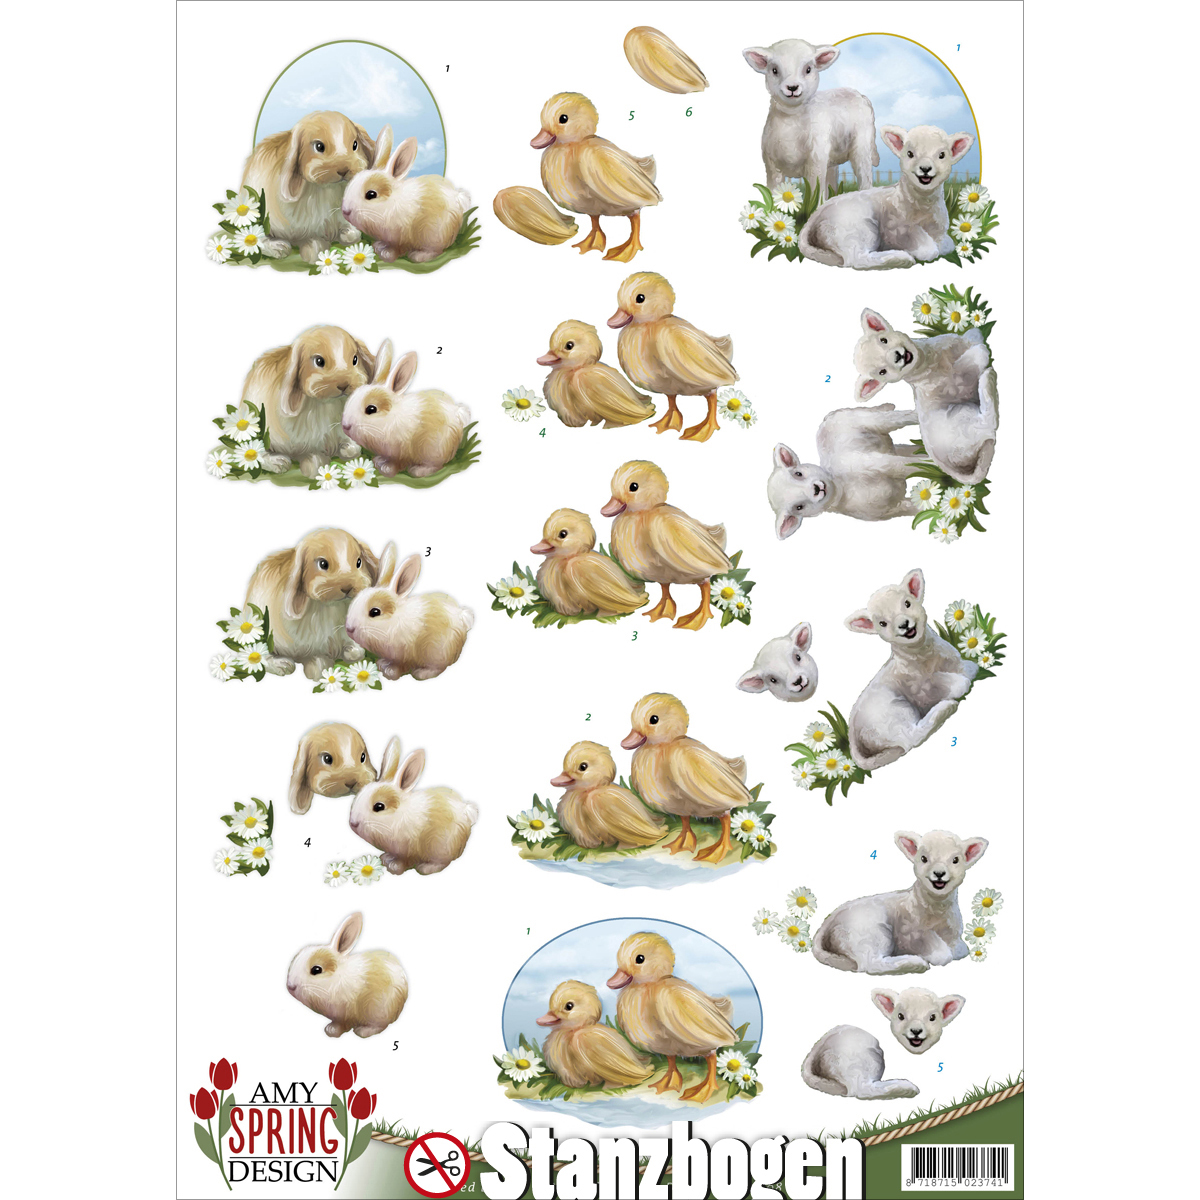 Find It Amy Design Spring Punchout Sheet-Bunny, Chick & Lamb